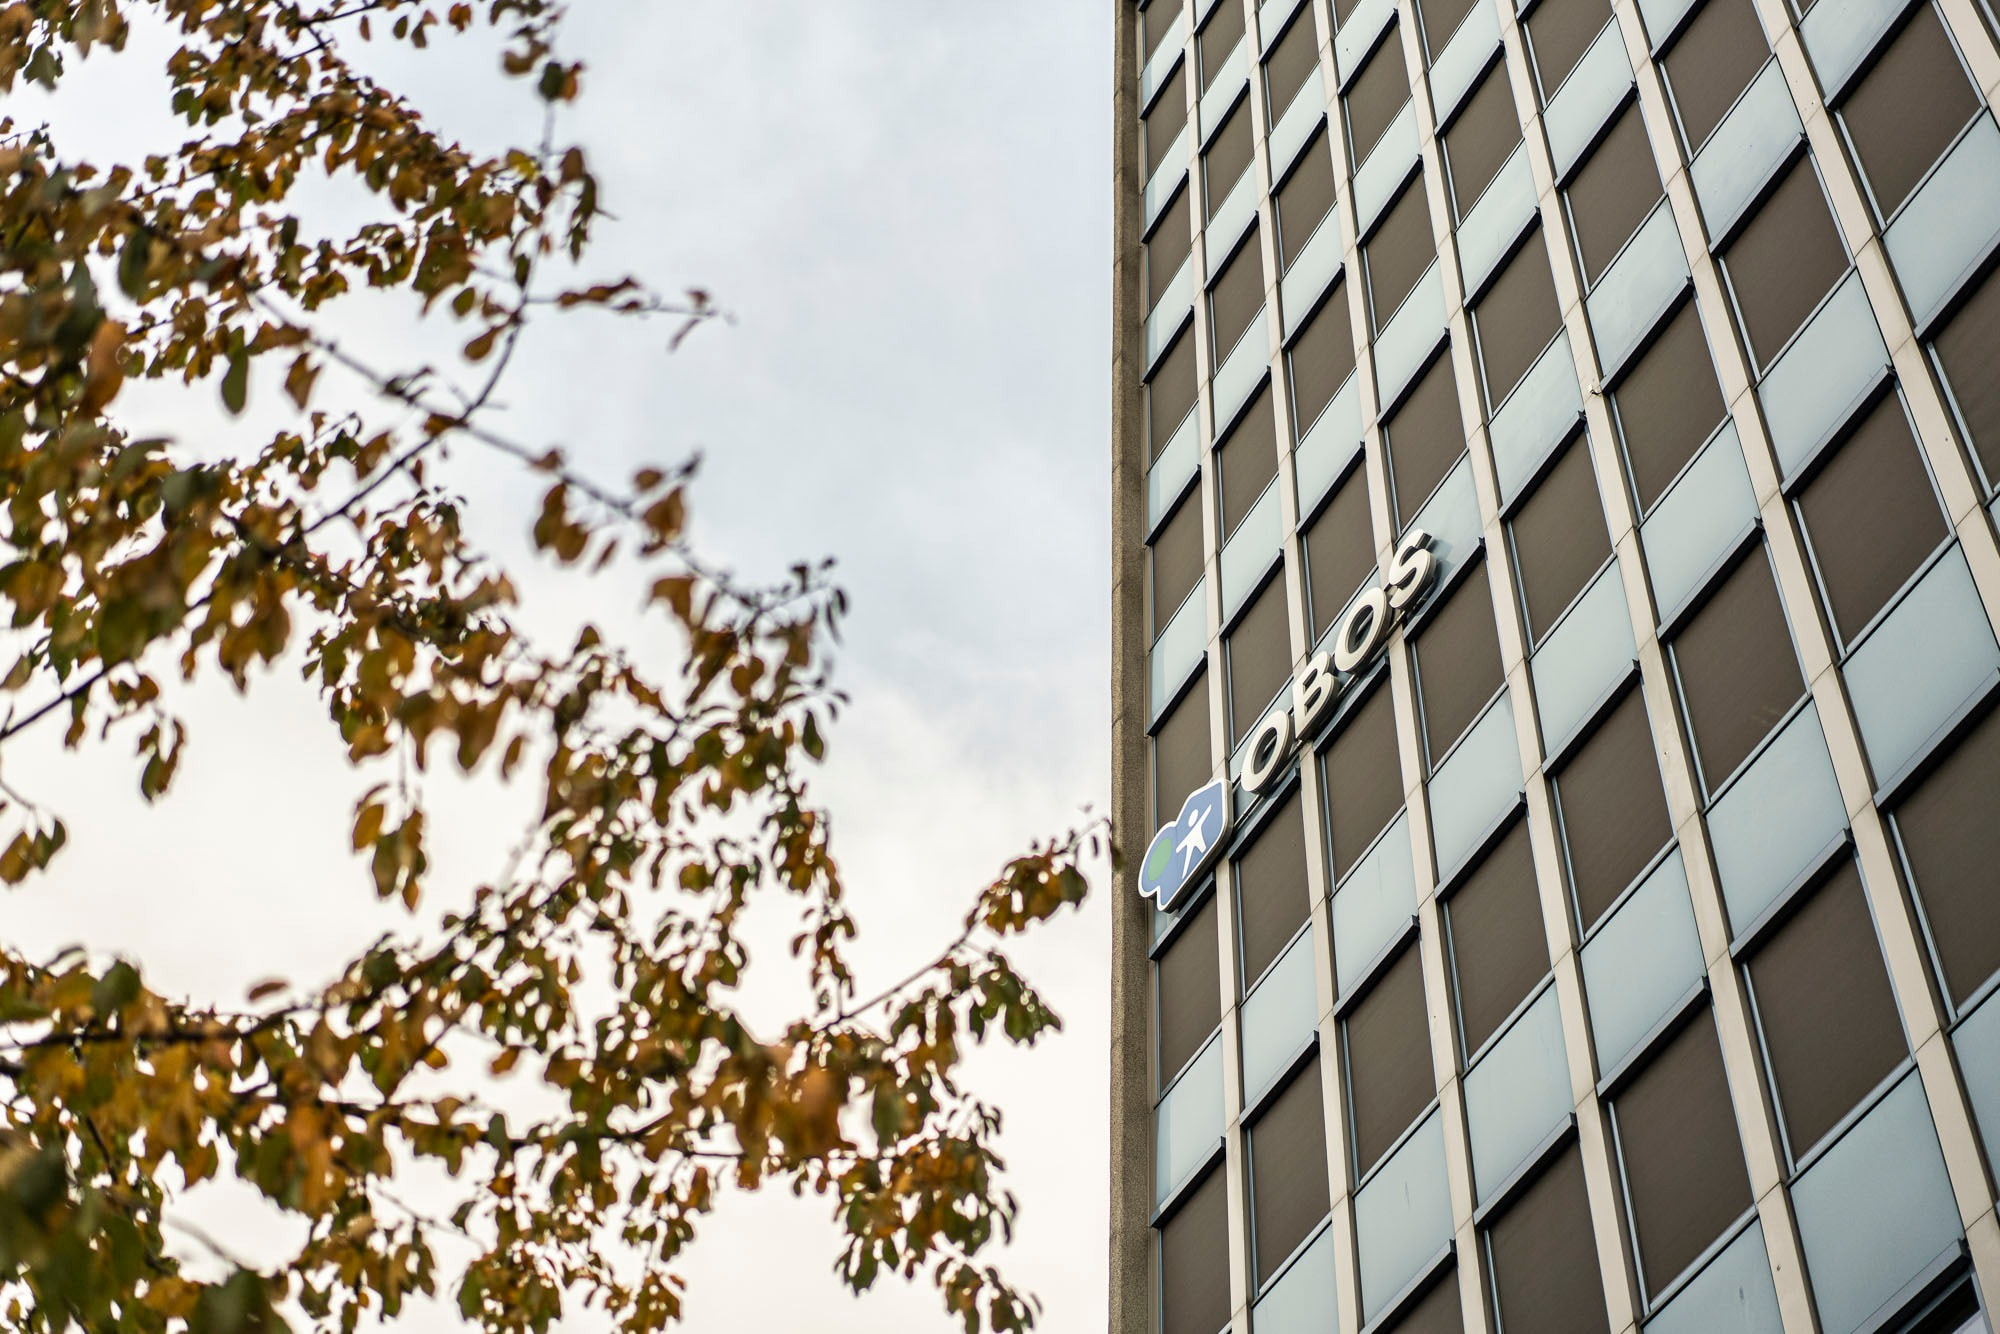 Tower block, Urban area, Building, Line, Facade, Leaf, Tree, Daytime, Sky, Architecture